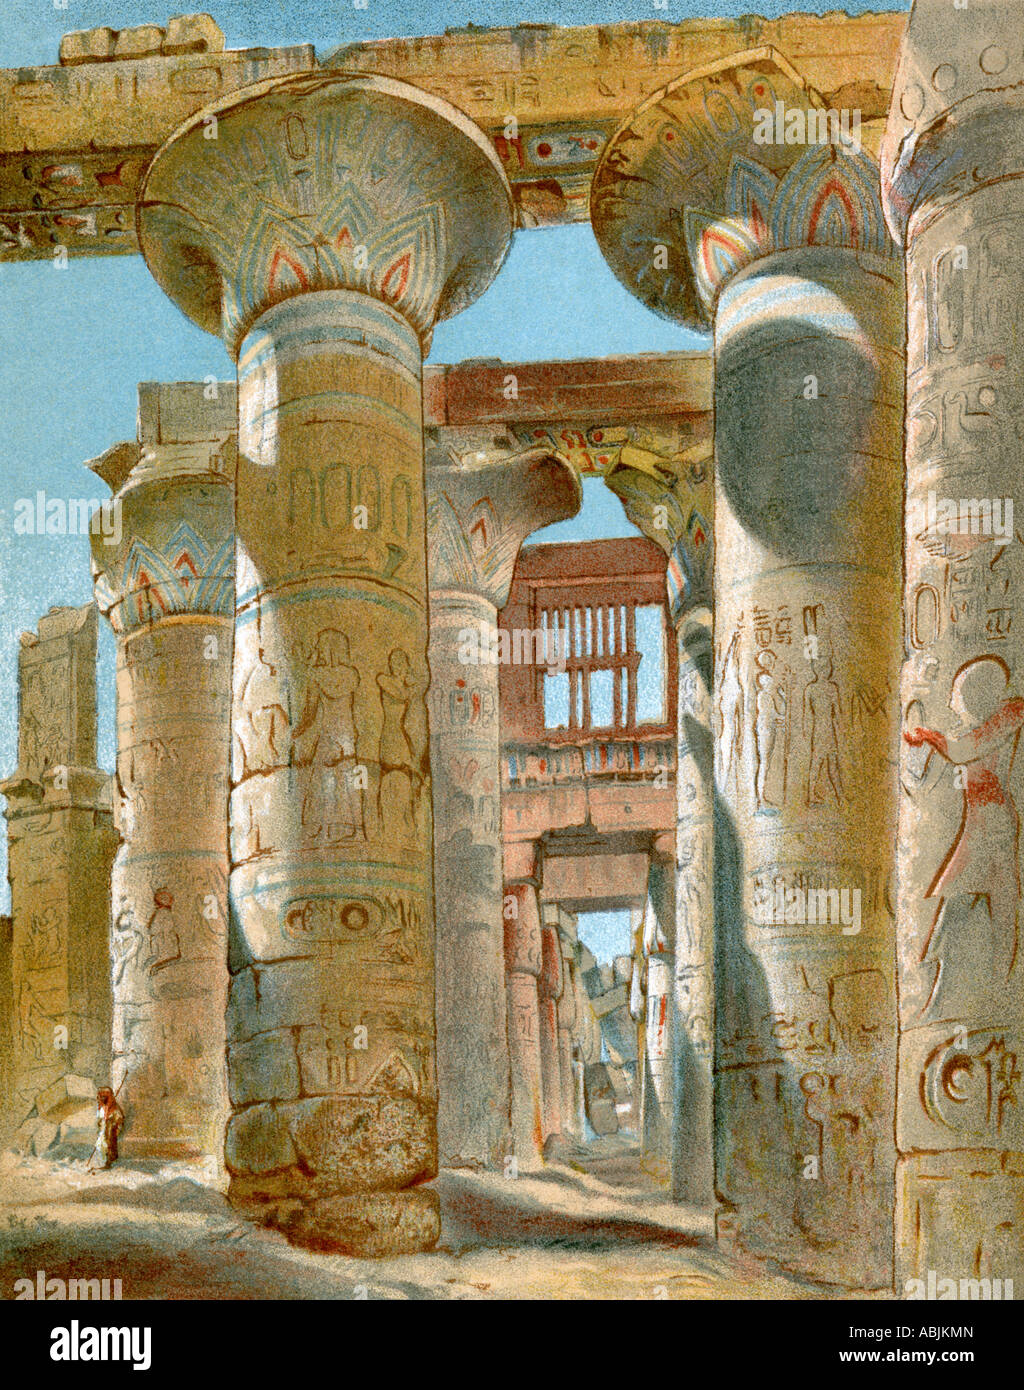 ancient egyptian architecture stock photos ancient egyptian